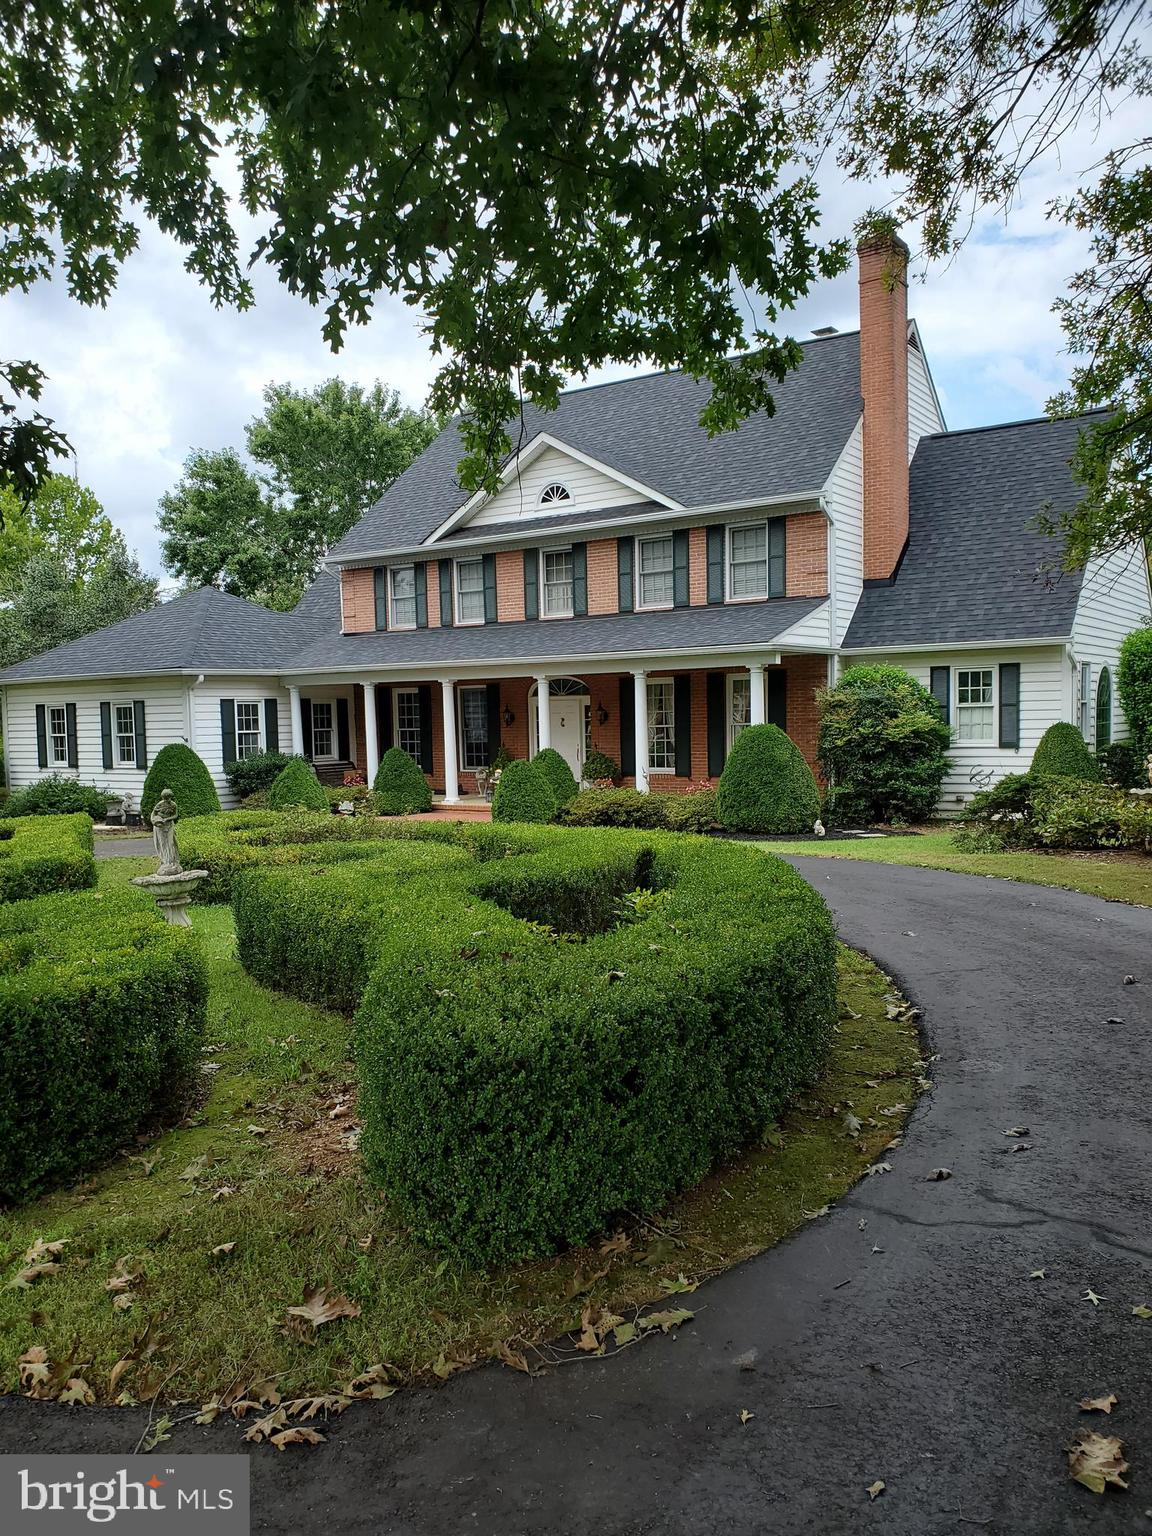 GRANDVIEW-A beautiful custom 5 BR and 4.5 bath waterfront home on 3 acres, located in the unique est